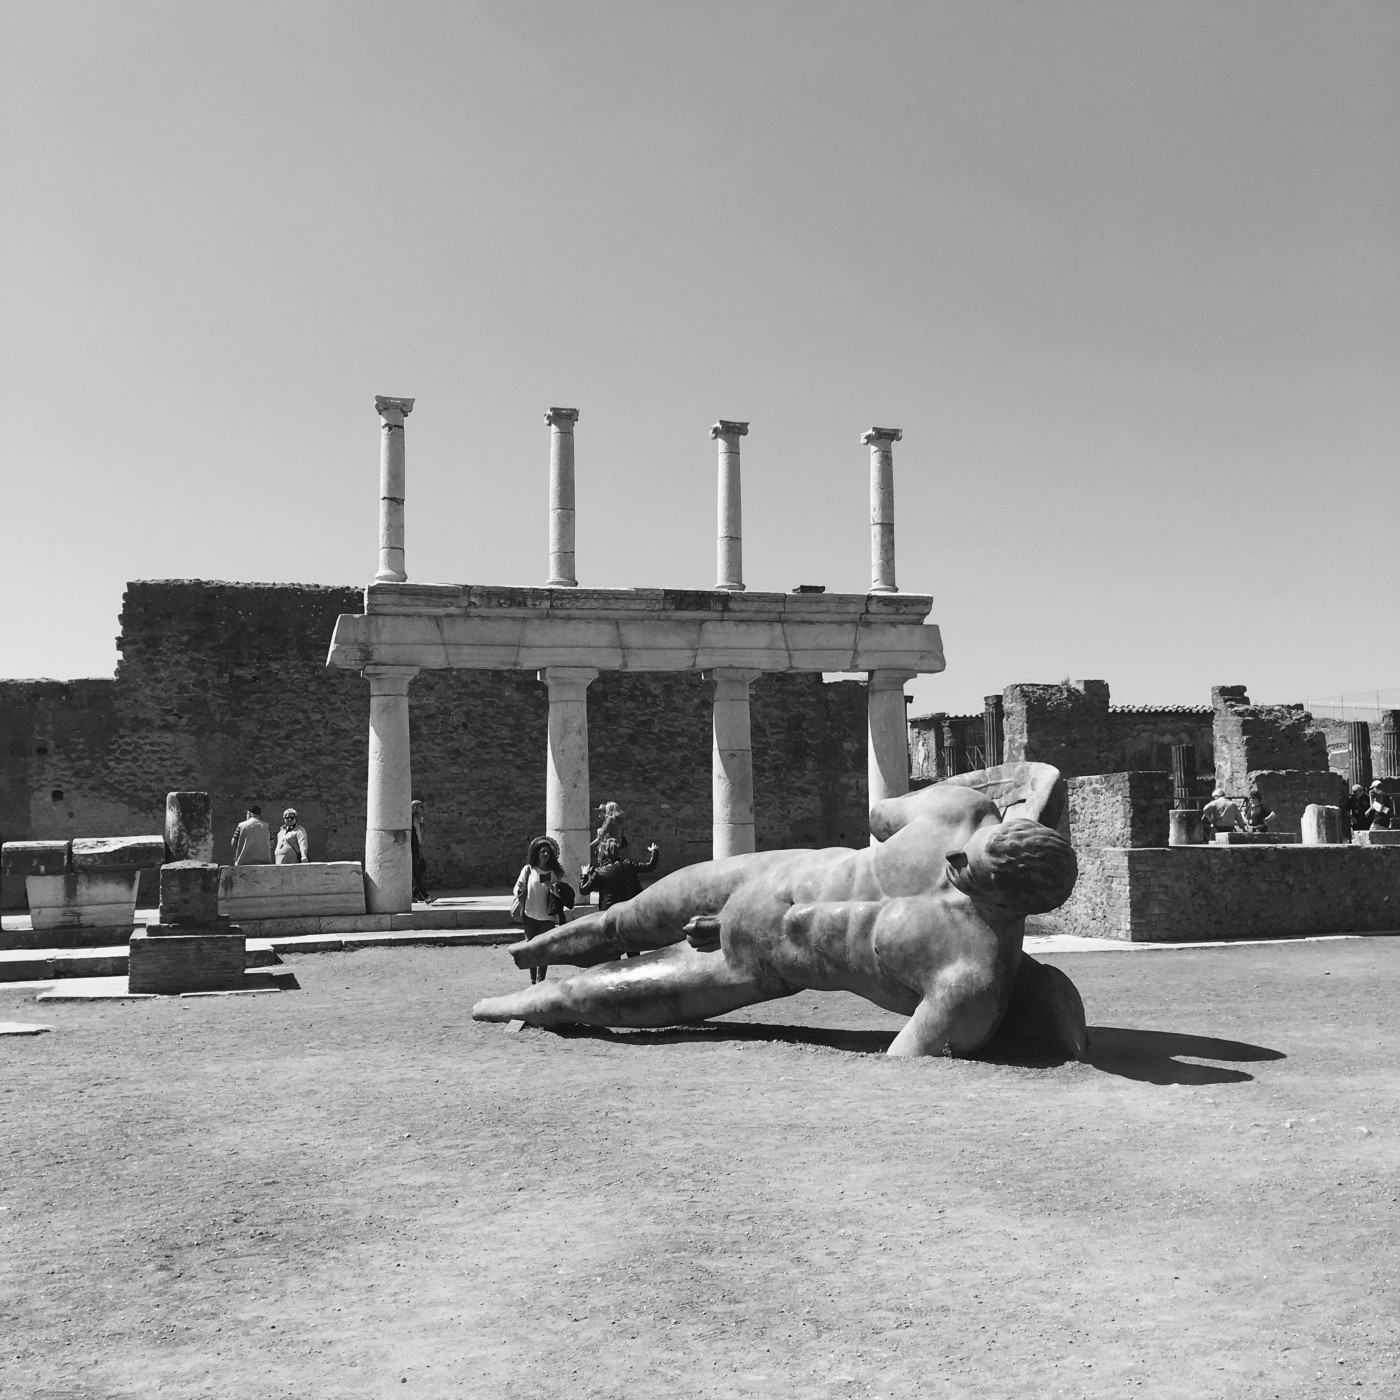 Black & white photo of a section of the excavated Forum at Pompeii. A large, modern, winged male figure is tipped on its side in front of a facade with two levels of columns.